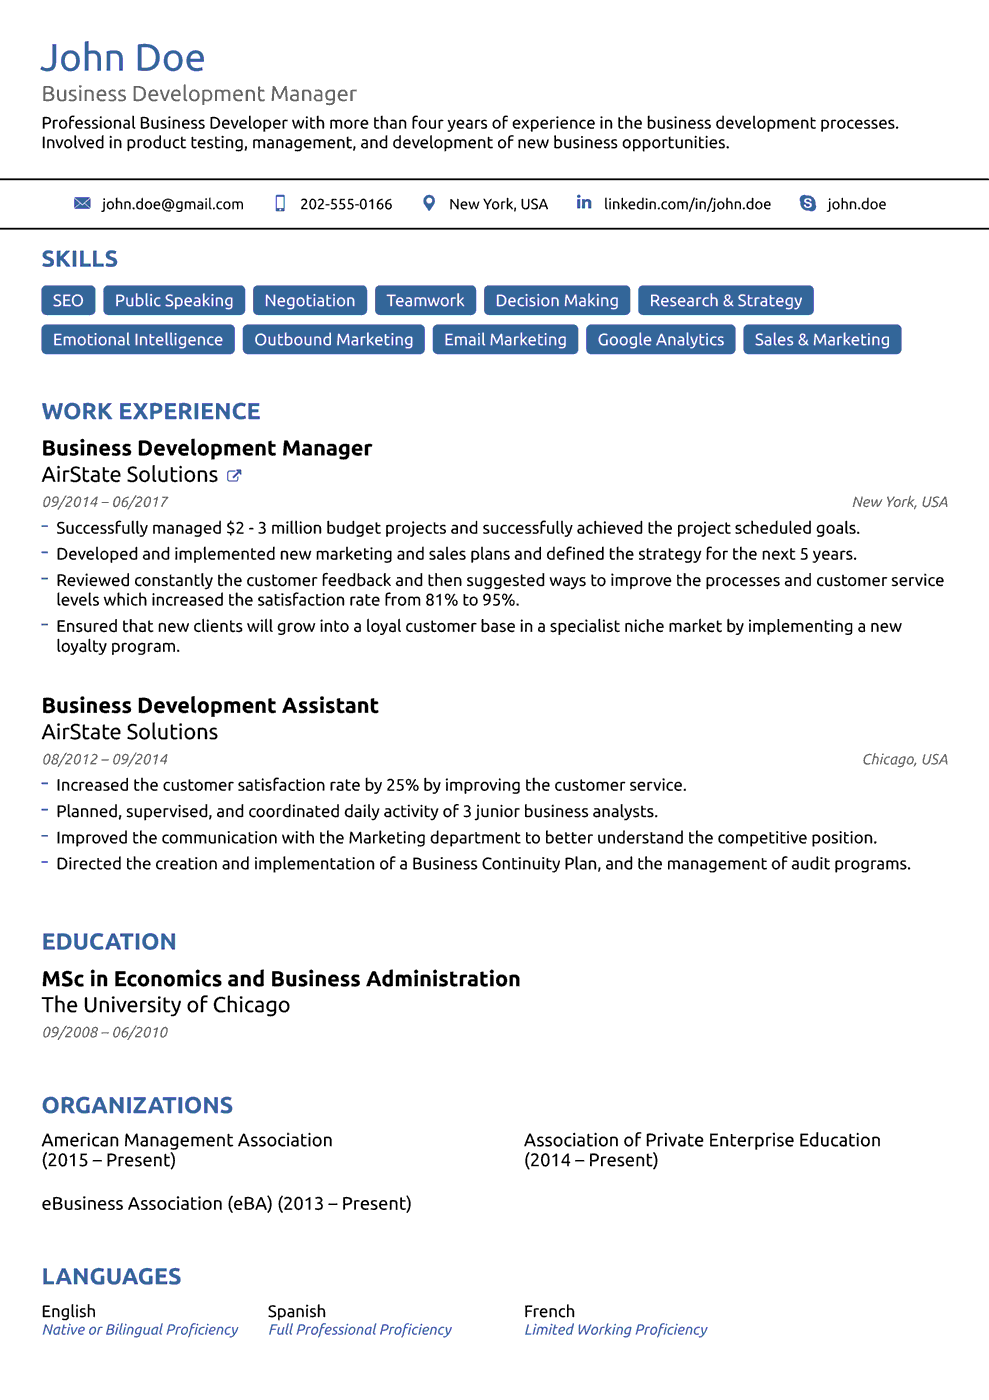 basic resume template resume templates education - Resume Improved